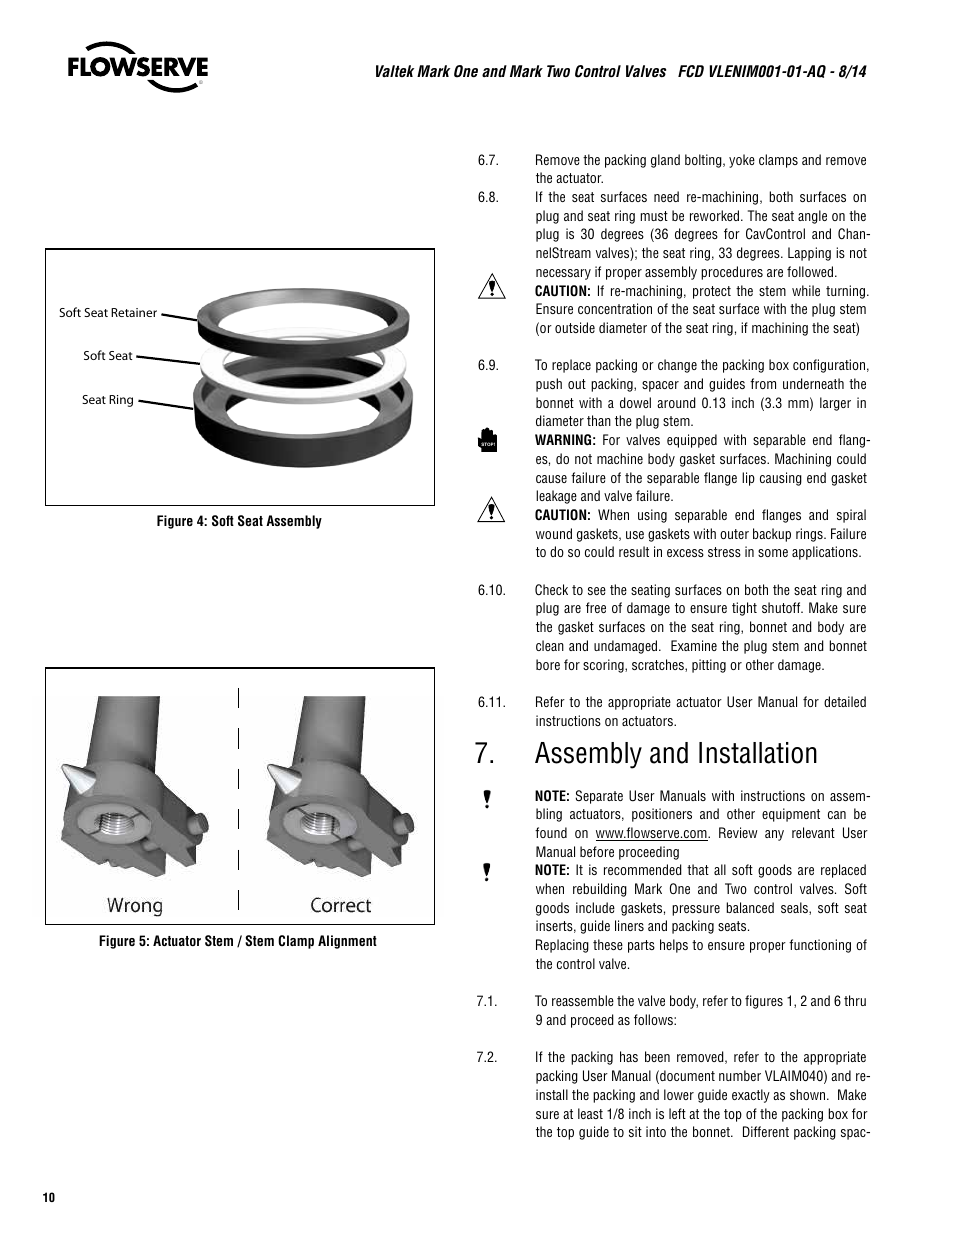 Flowserve valtek mark one three-way control valve user manual | 4.